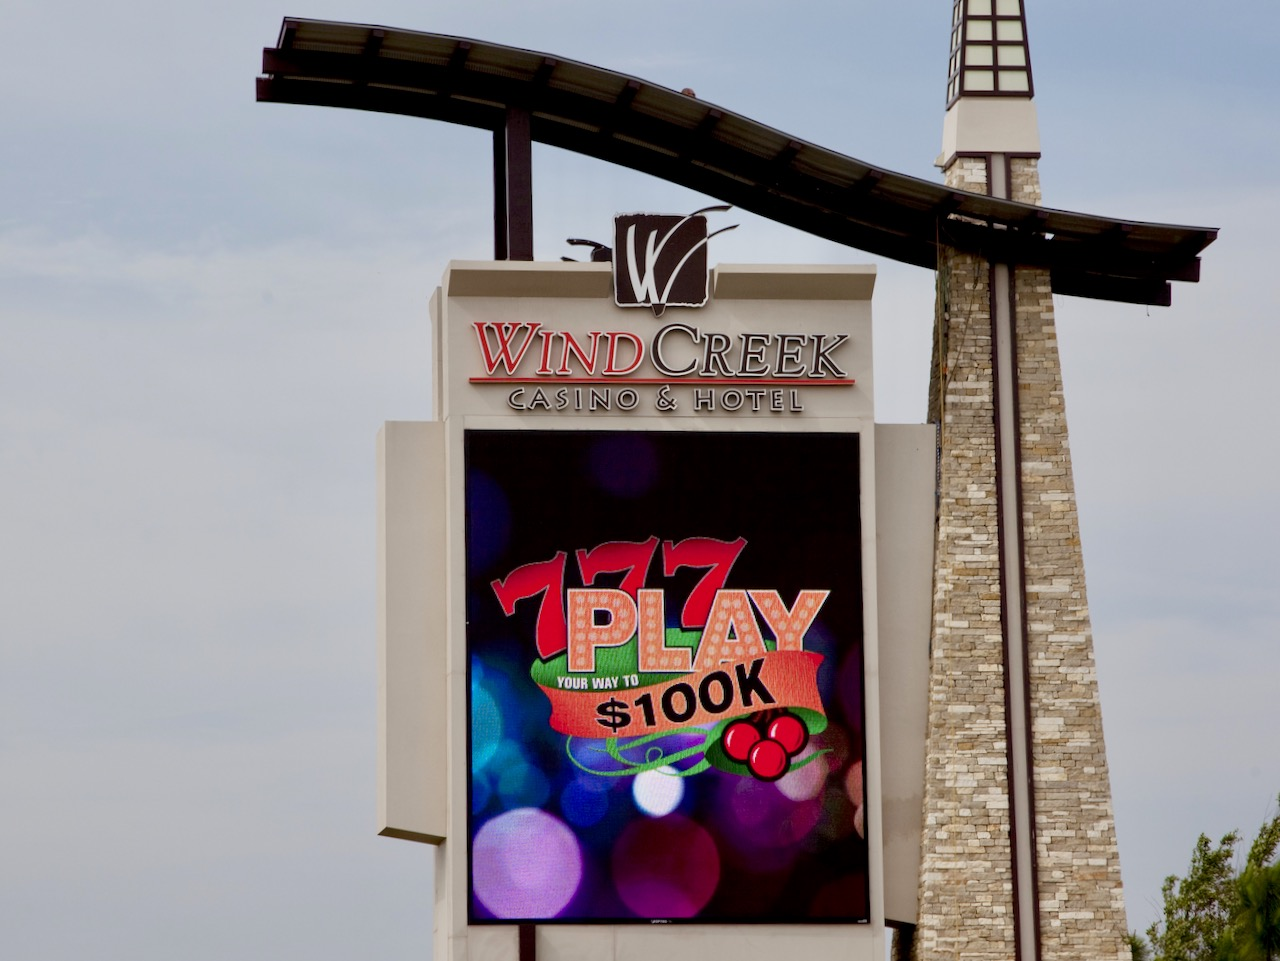 Poarch Band of Creek Indians offers billions of dollars in gaming revenues